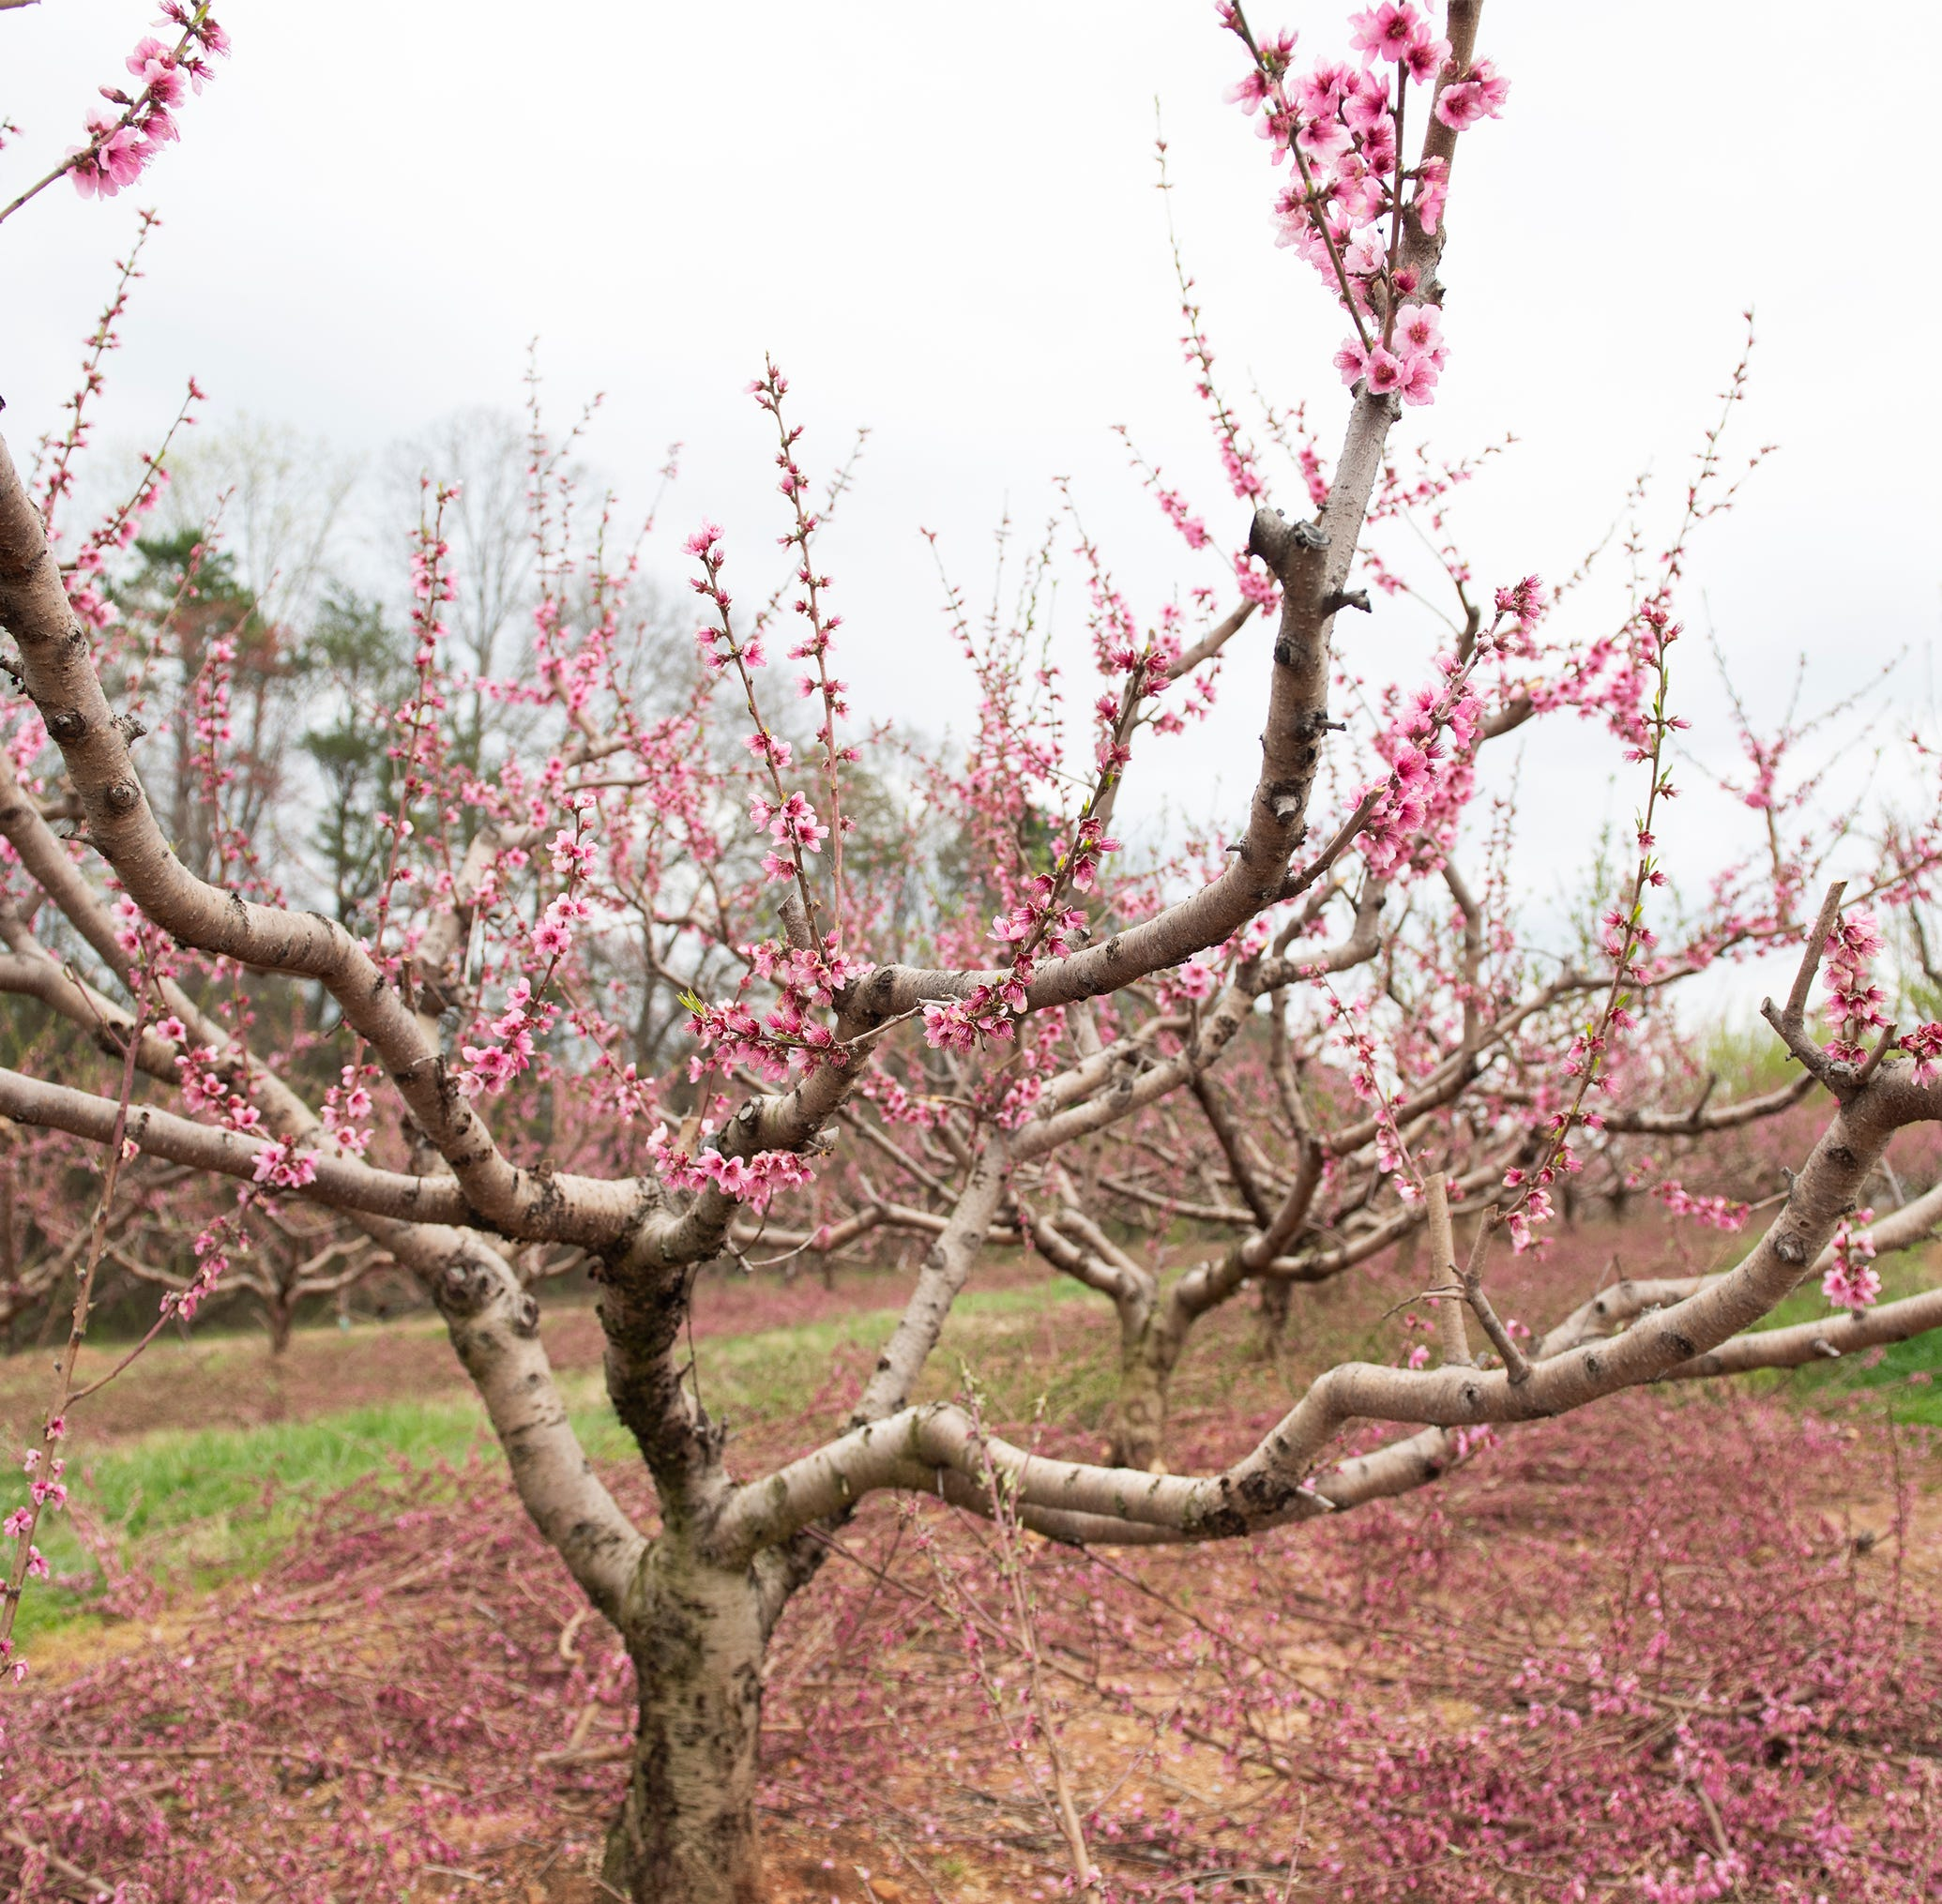 The outlook for the 2019 SC peach crop is downright peachy with a critical month ahead